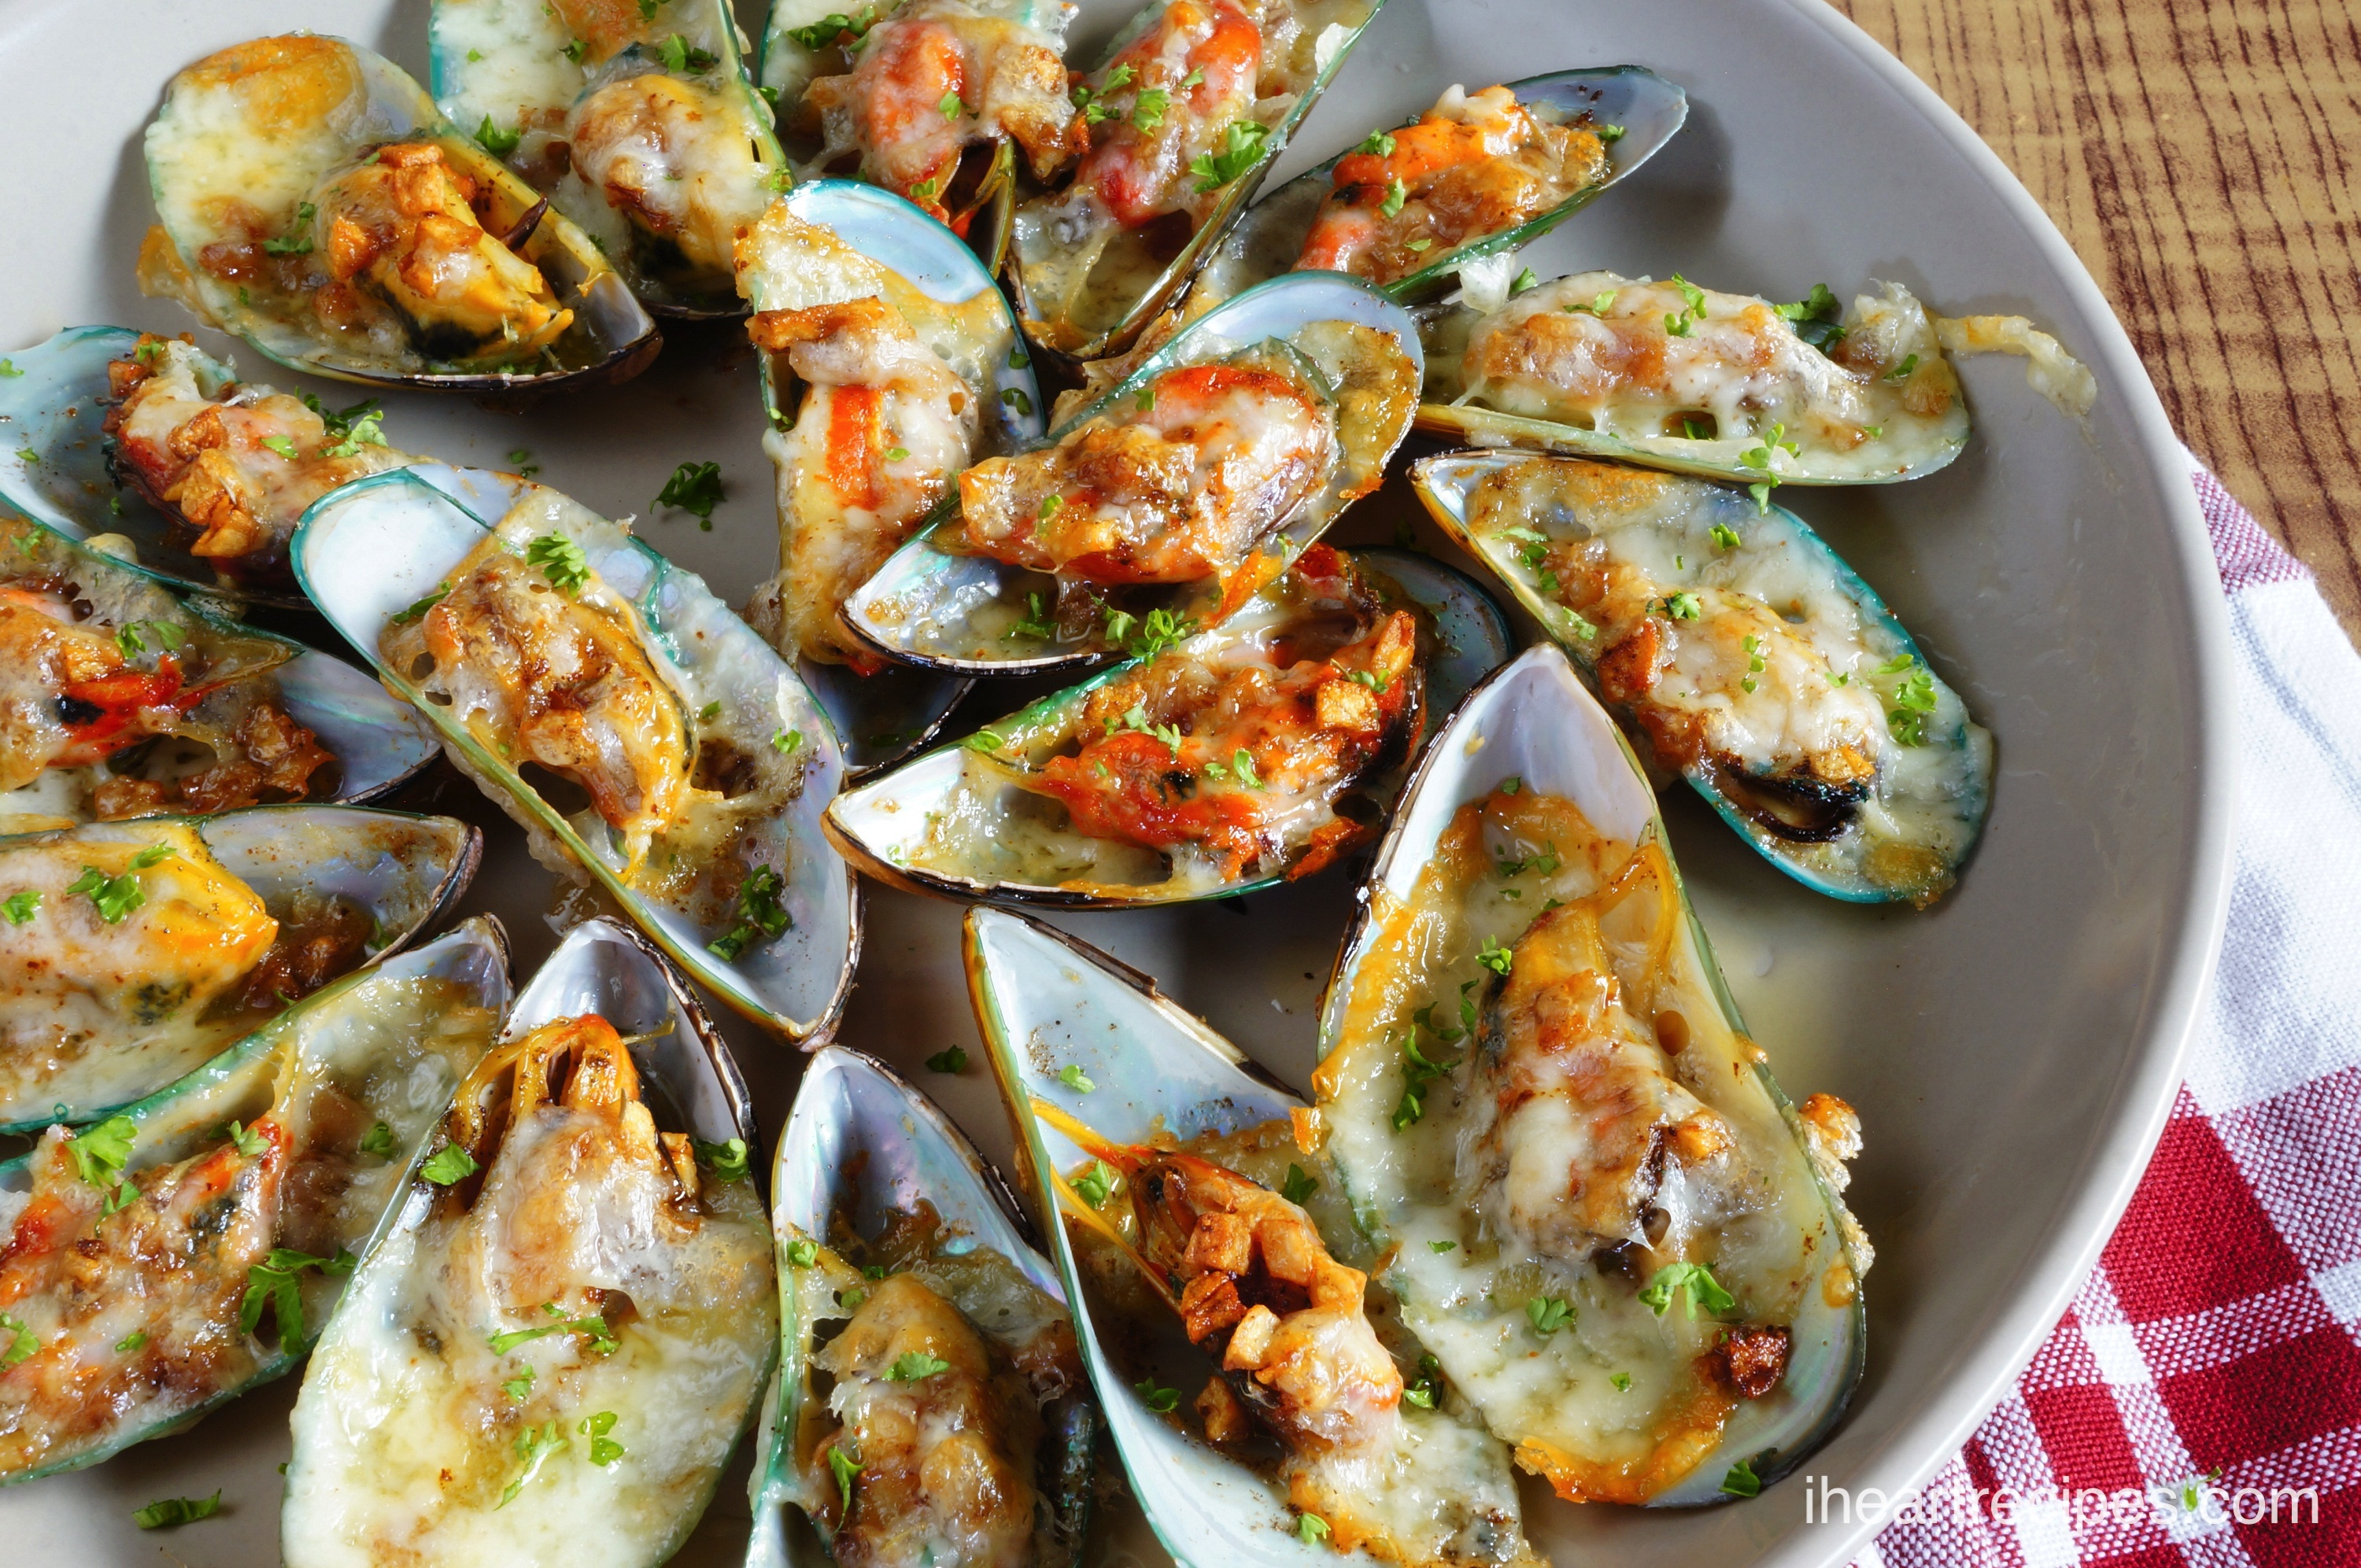 These Cheesy Garlic Mussels are baked, not steamed! So delicious.